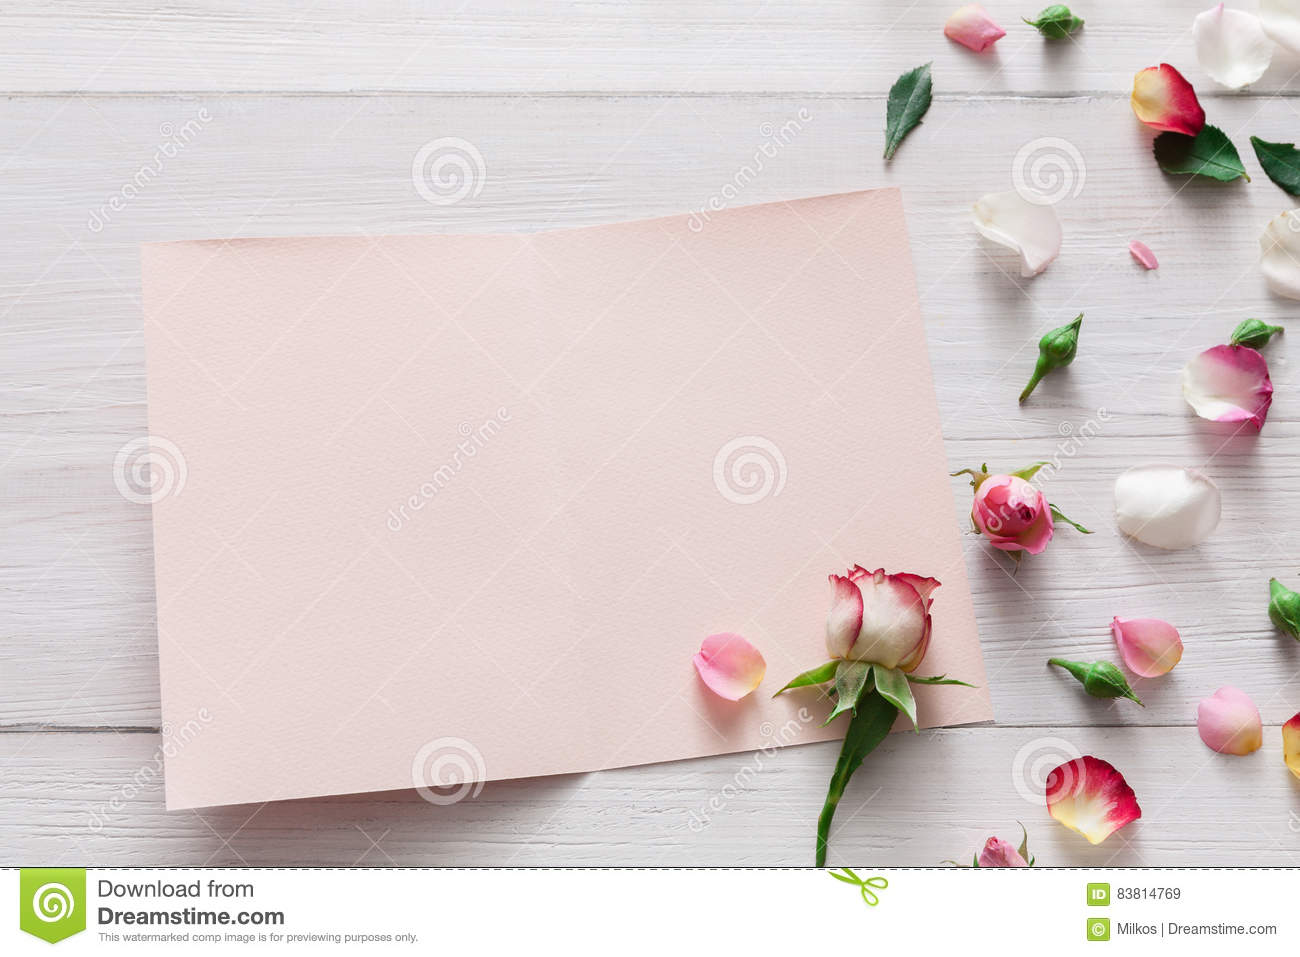 Valentine day background, rose flowers and card on white wood